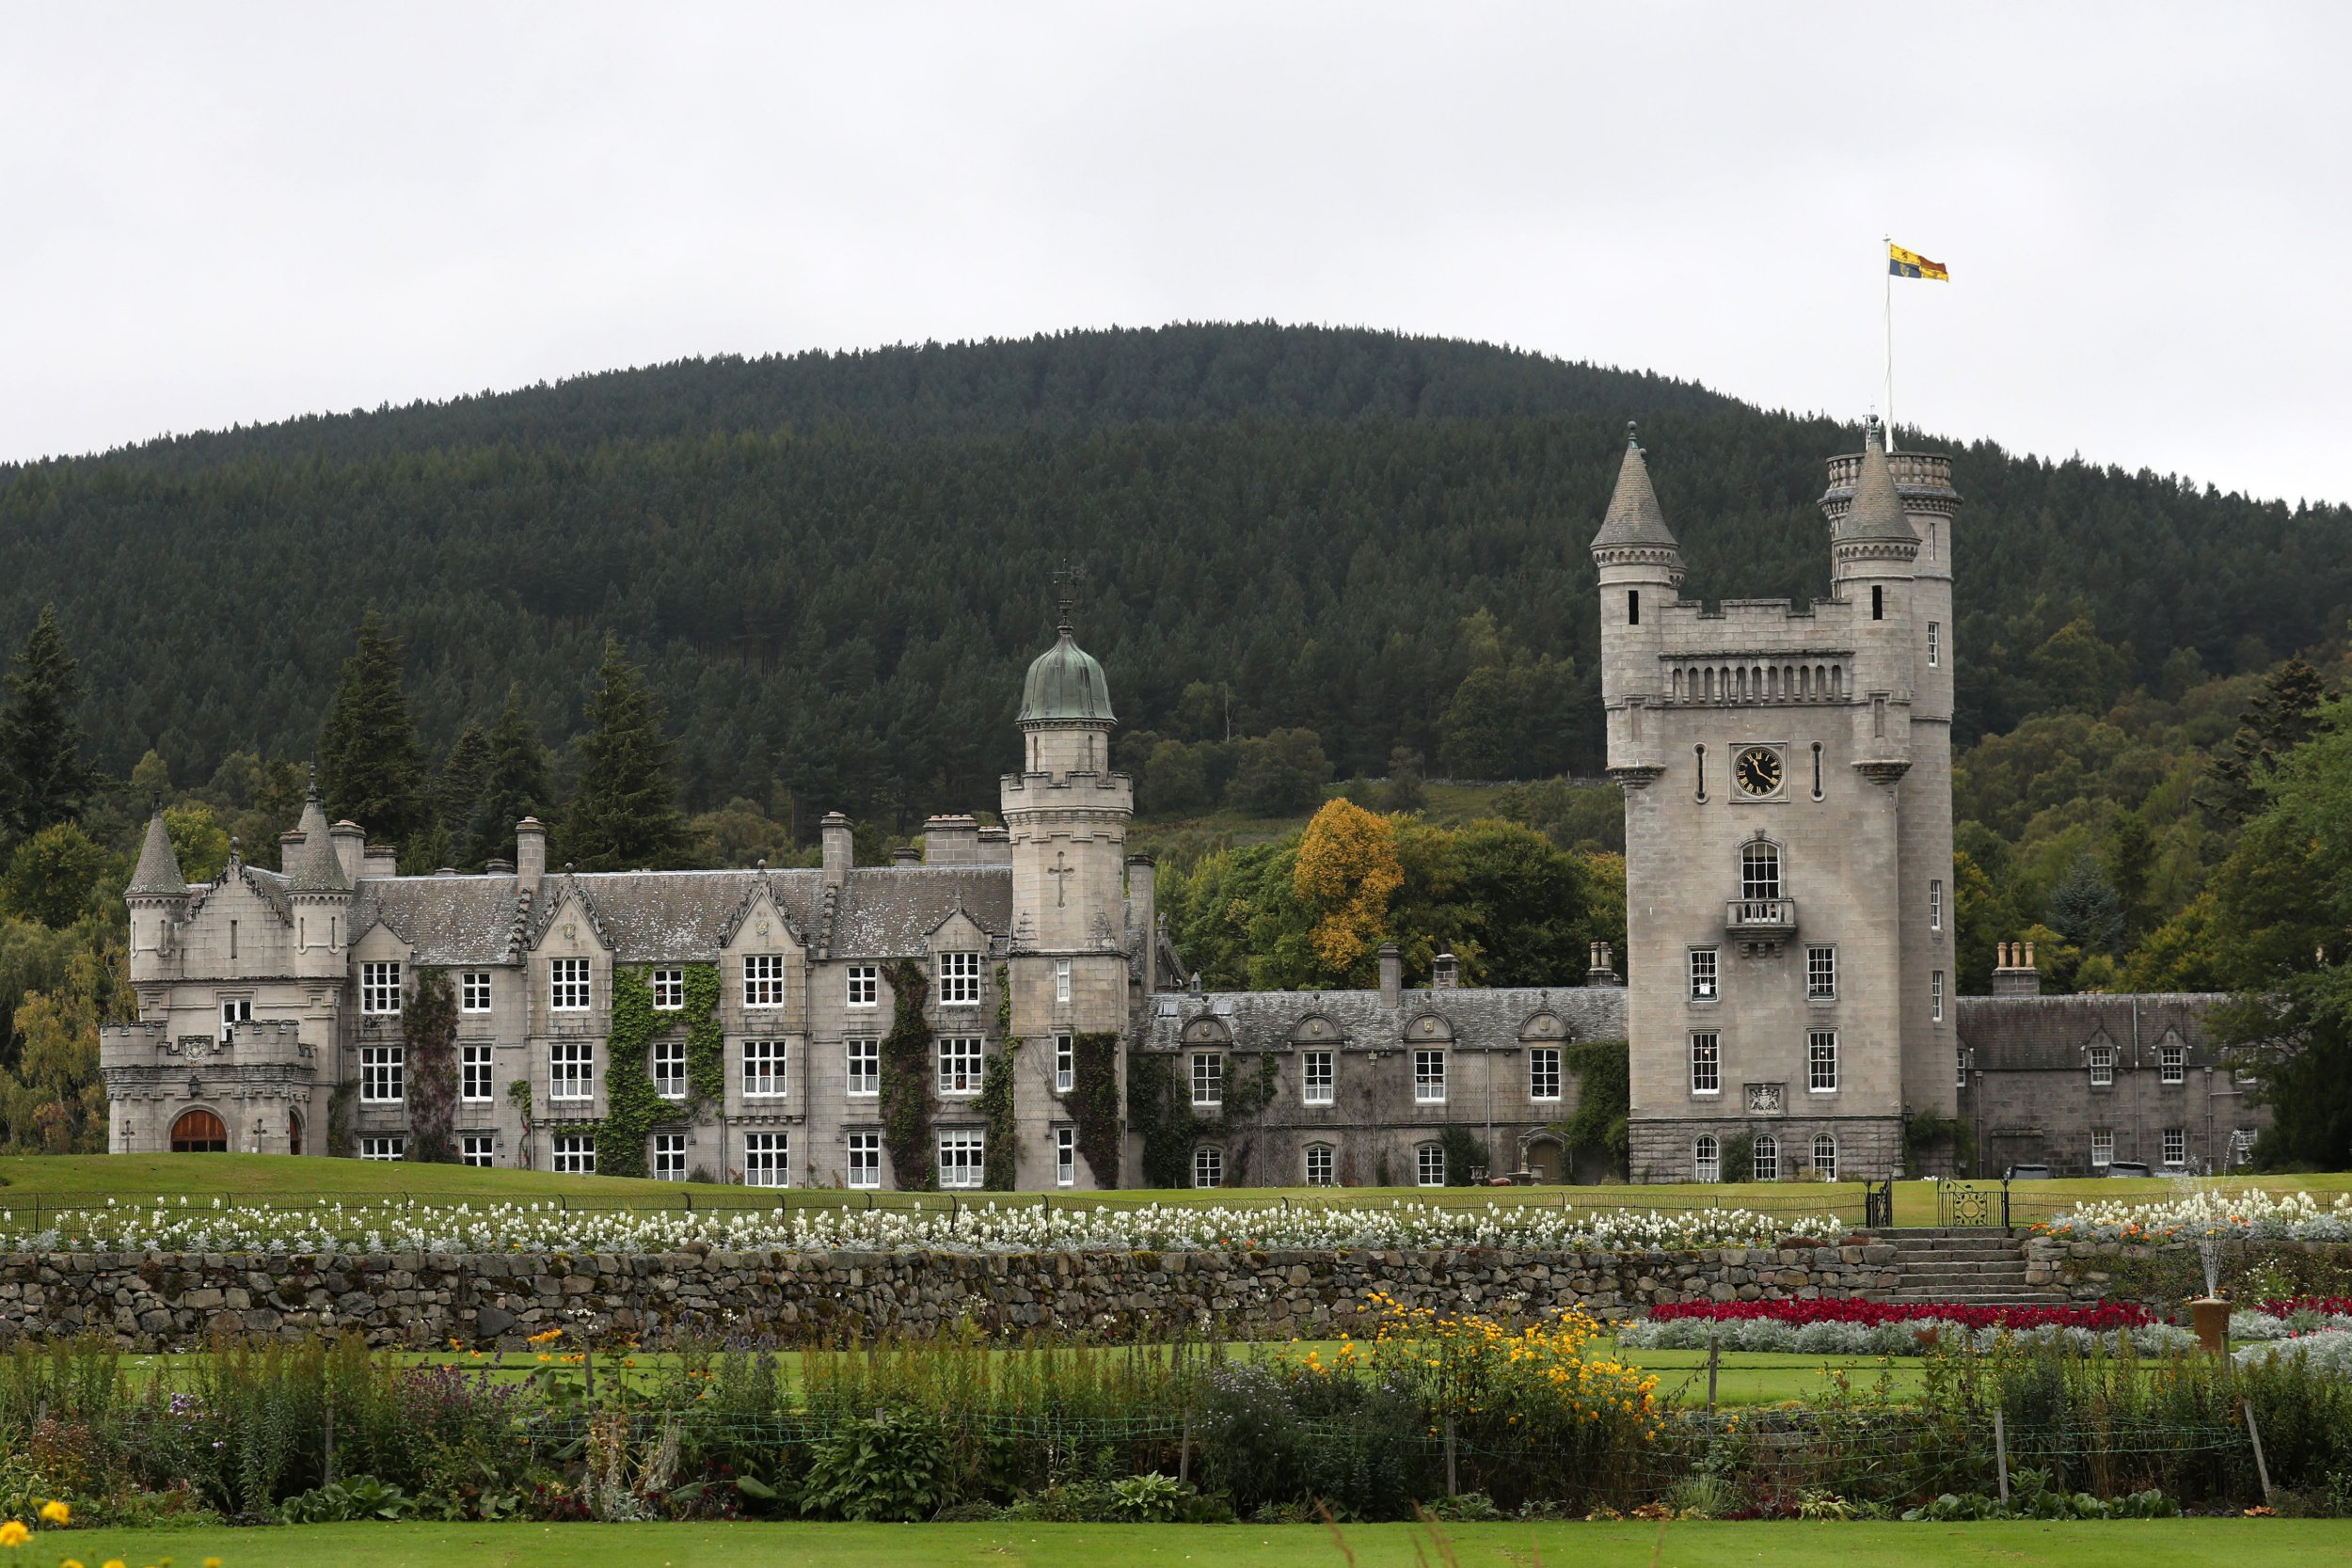 The Royal Standard flying at Balmoral Castle in Scotland on September 20, 2017. / AFP PHOTO / POOL / Andrew Milligan (Photo credit should read ANDREW MILLIGAN/AFP via Getty Images)